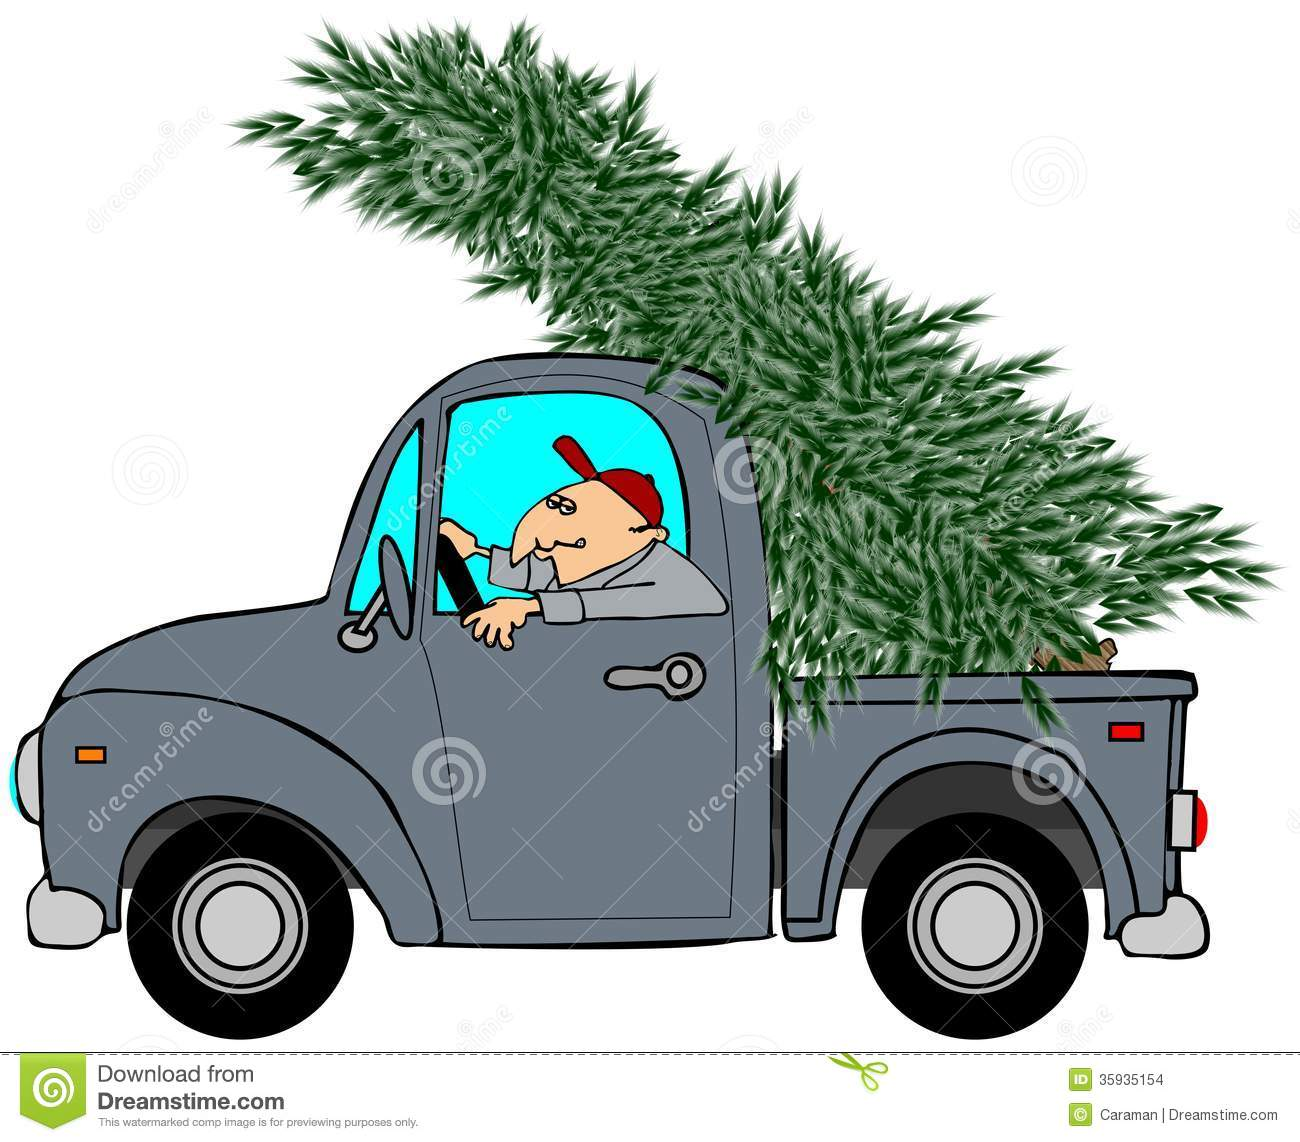 Wonderful Free Christmas Tree Pick Up Part - 2: Royalty-Free Stock Photo. Download Bringing Home The Christmas Tree ...